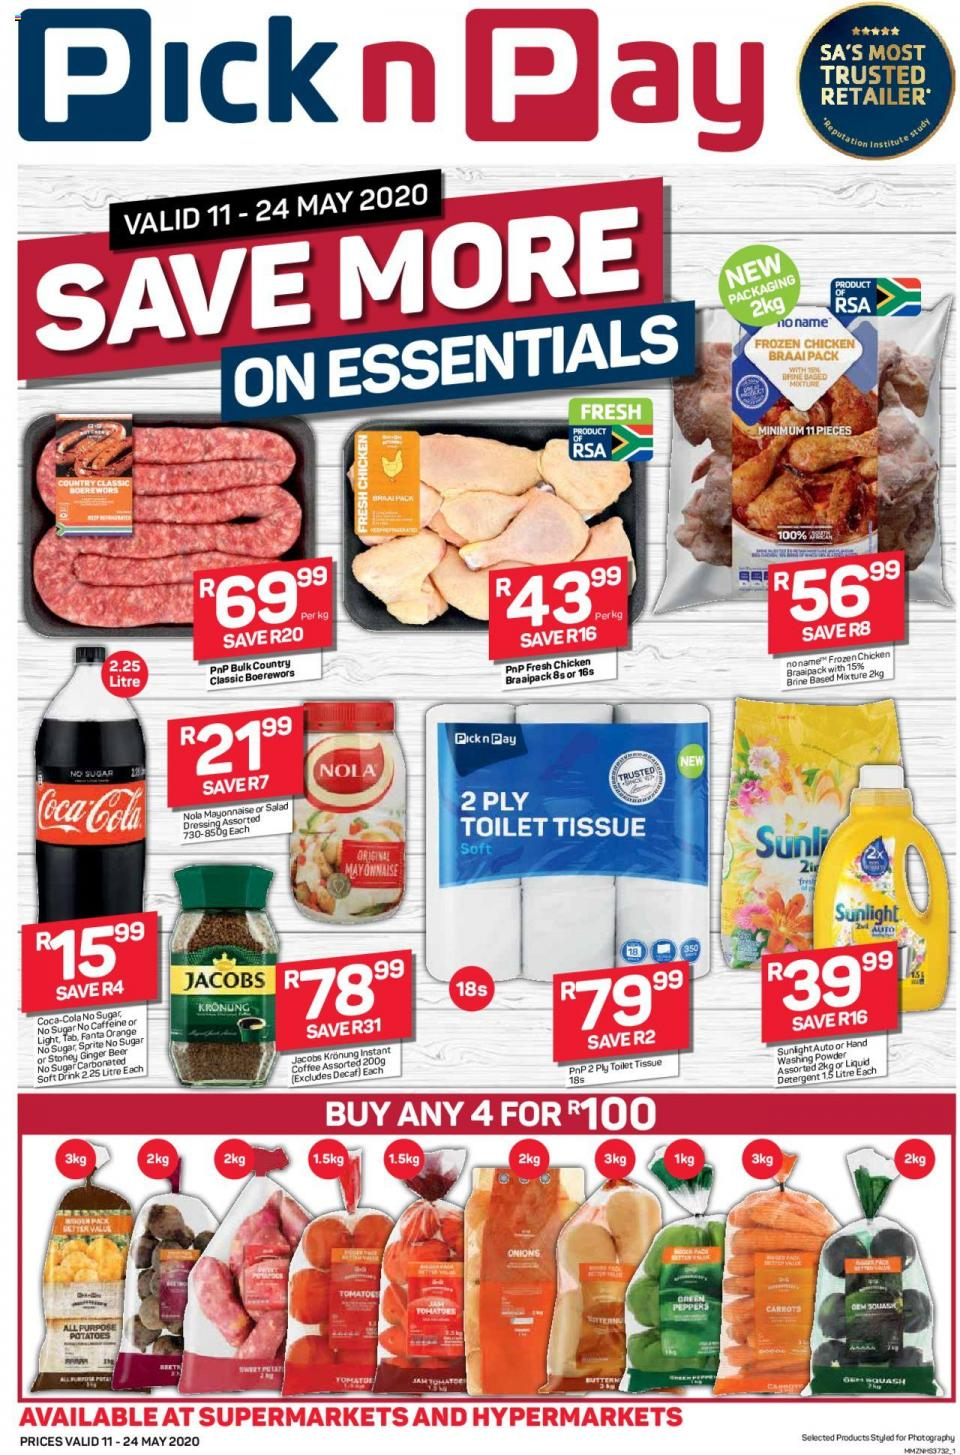 pick n pay specials save more on essentials 11 may 2020